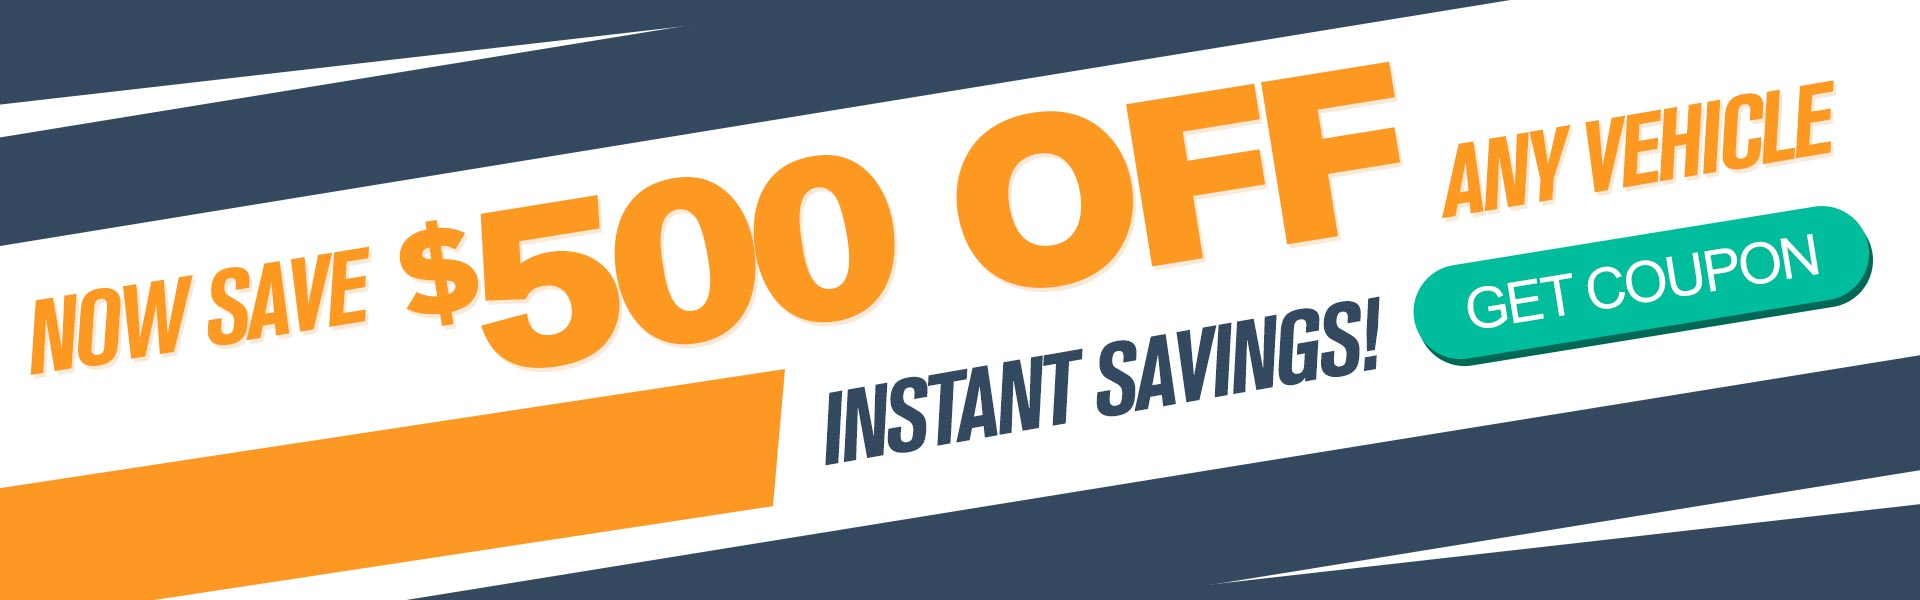 Instant Savings Coupon